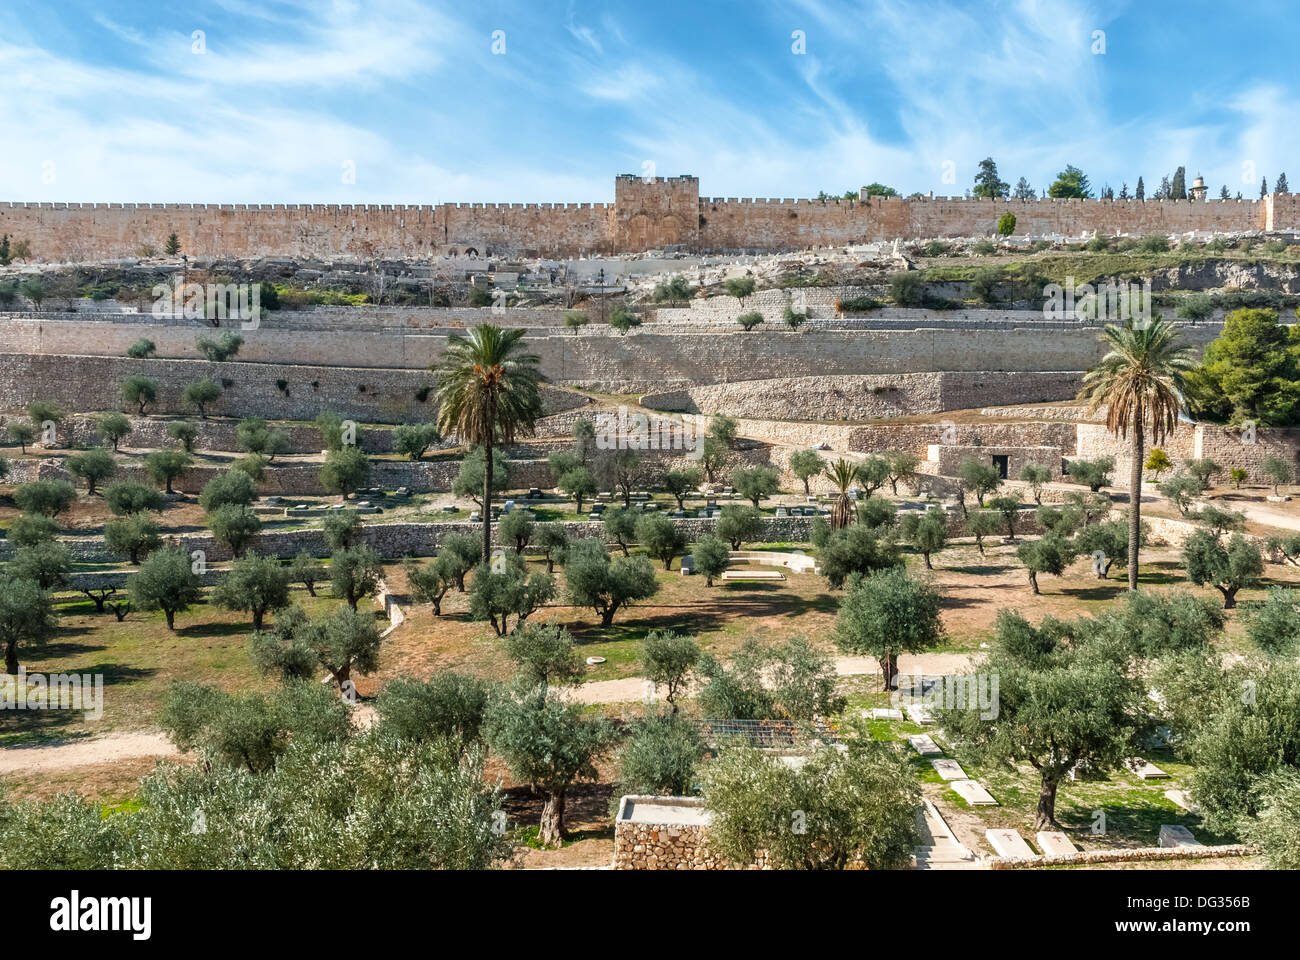 View of old city walls of Jerusalem from Mount olives, Israel - Stock Image